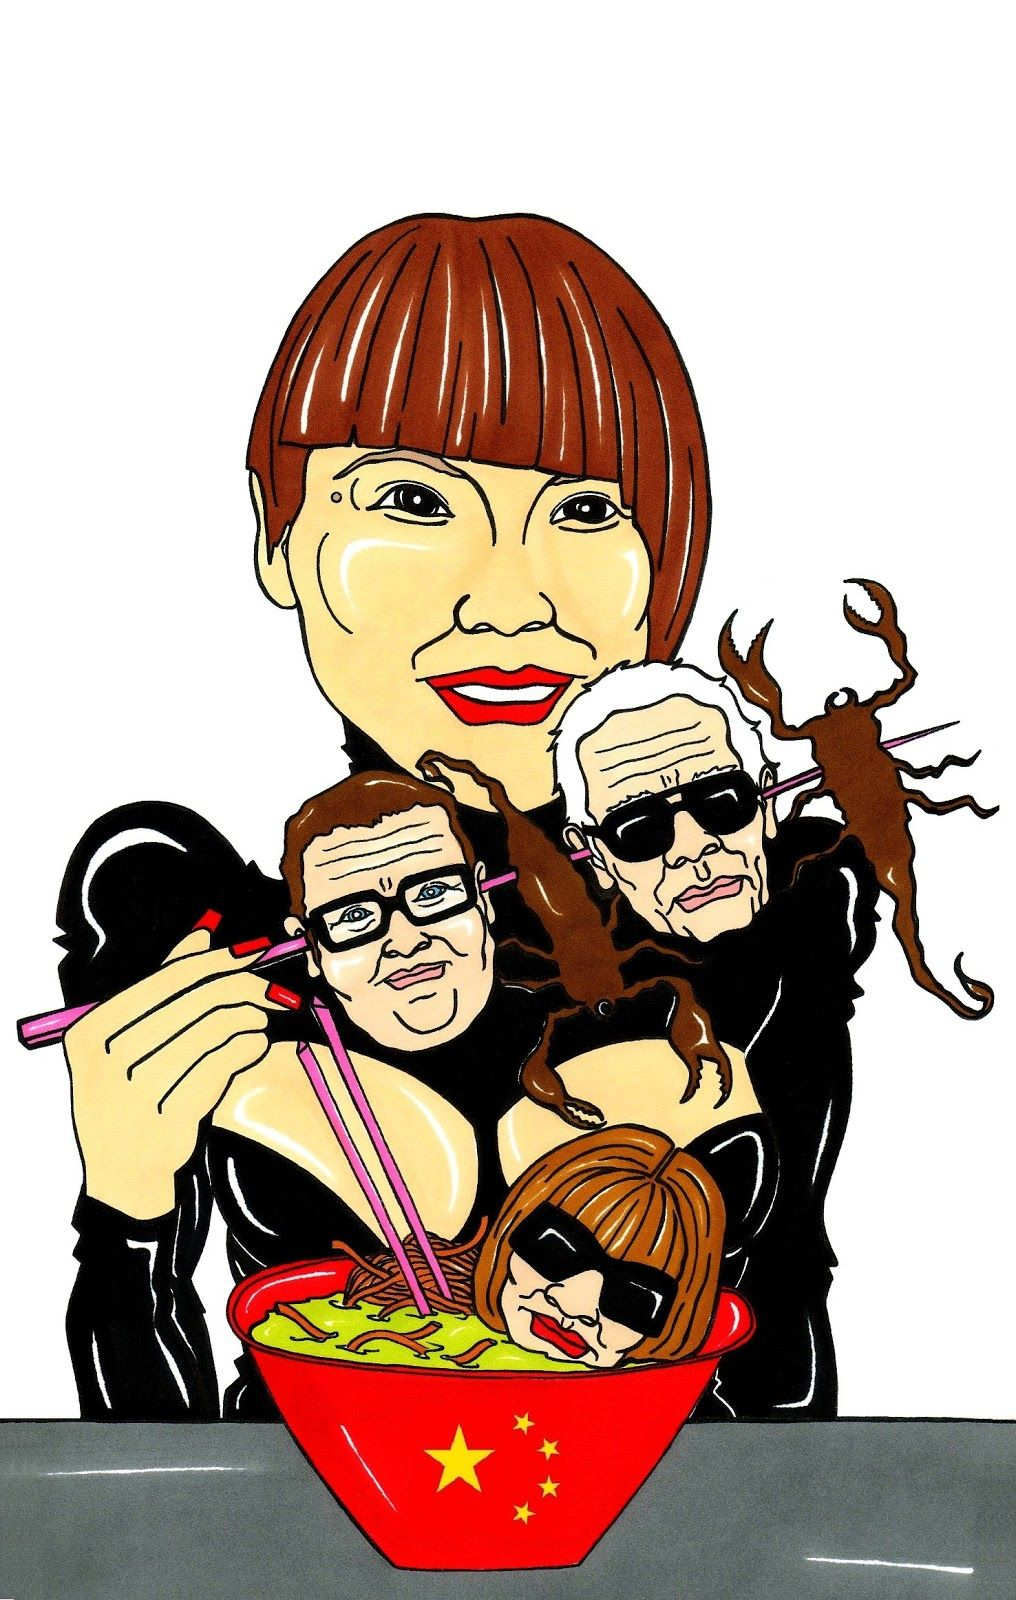 Vogue China's Angelica Cheung. Anna Wintour, Karl Lagerfeld and Alber Elbaz, a delicious chinese lunch! #ilustration